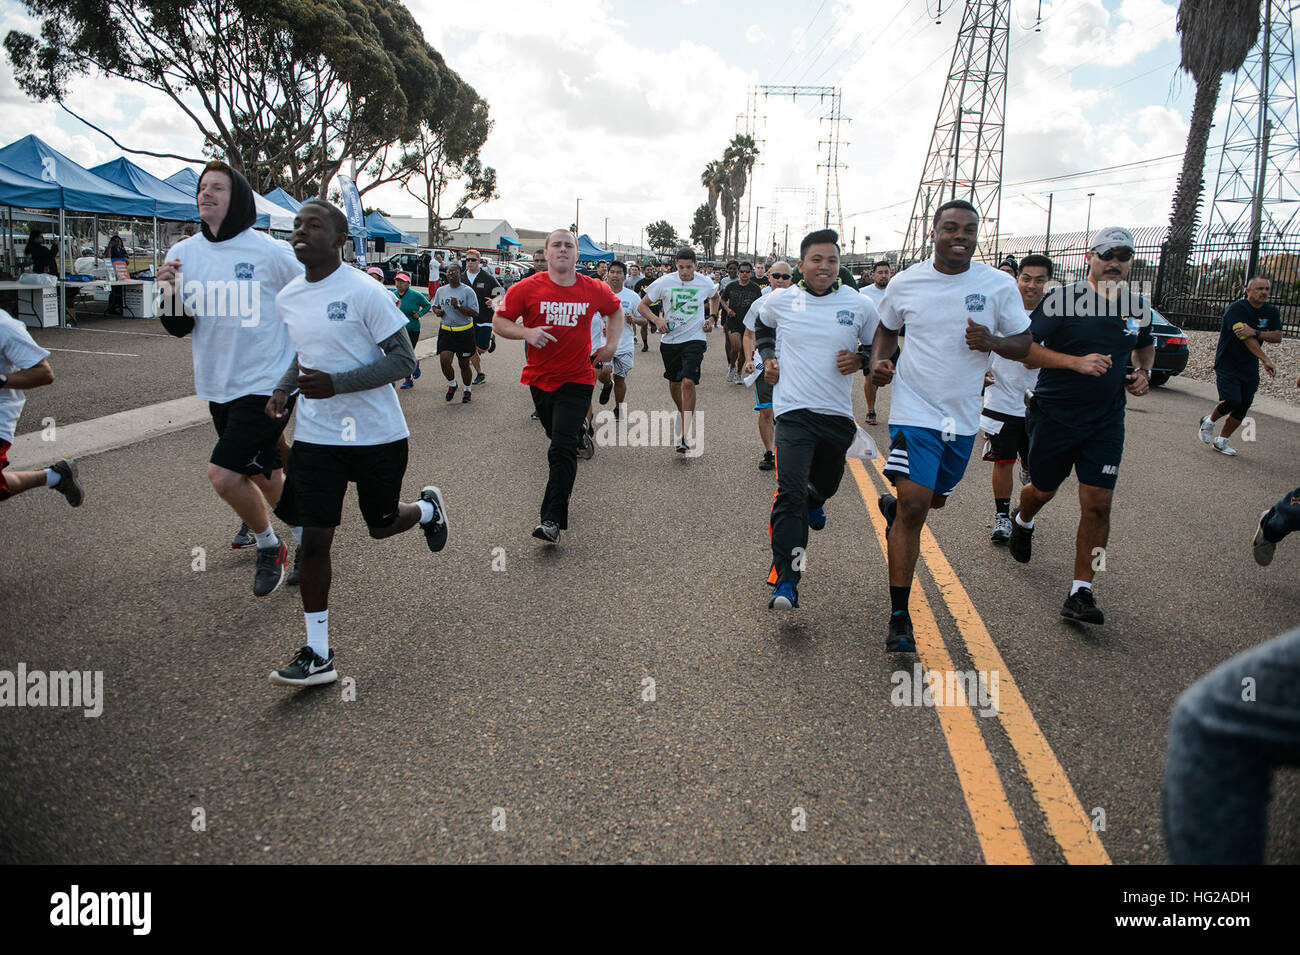 NAVAL BASE SAN DIEGO (Nov. 10, 2015)  Servicemembers, family and friends take part in a MWR Veterans Day run or - Stock Image